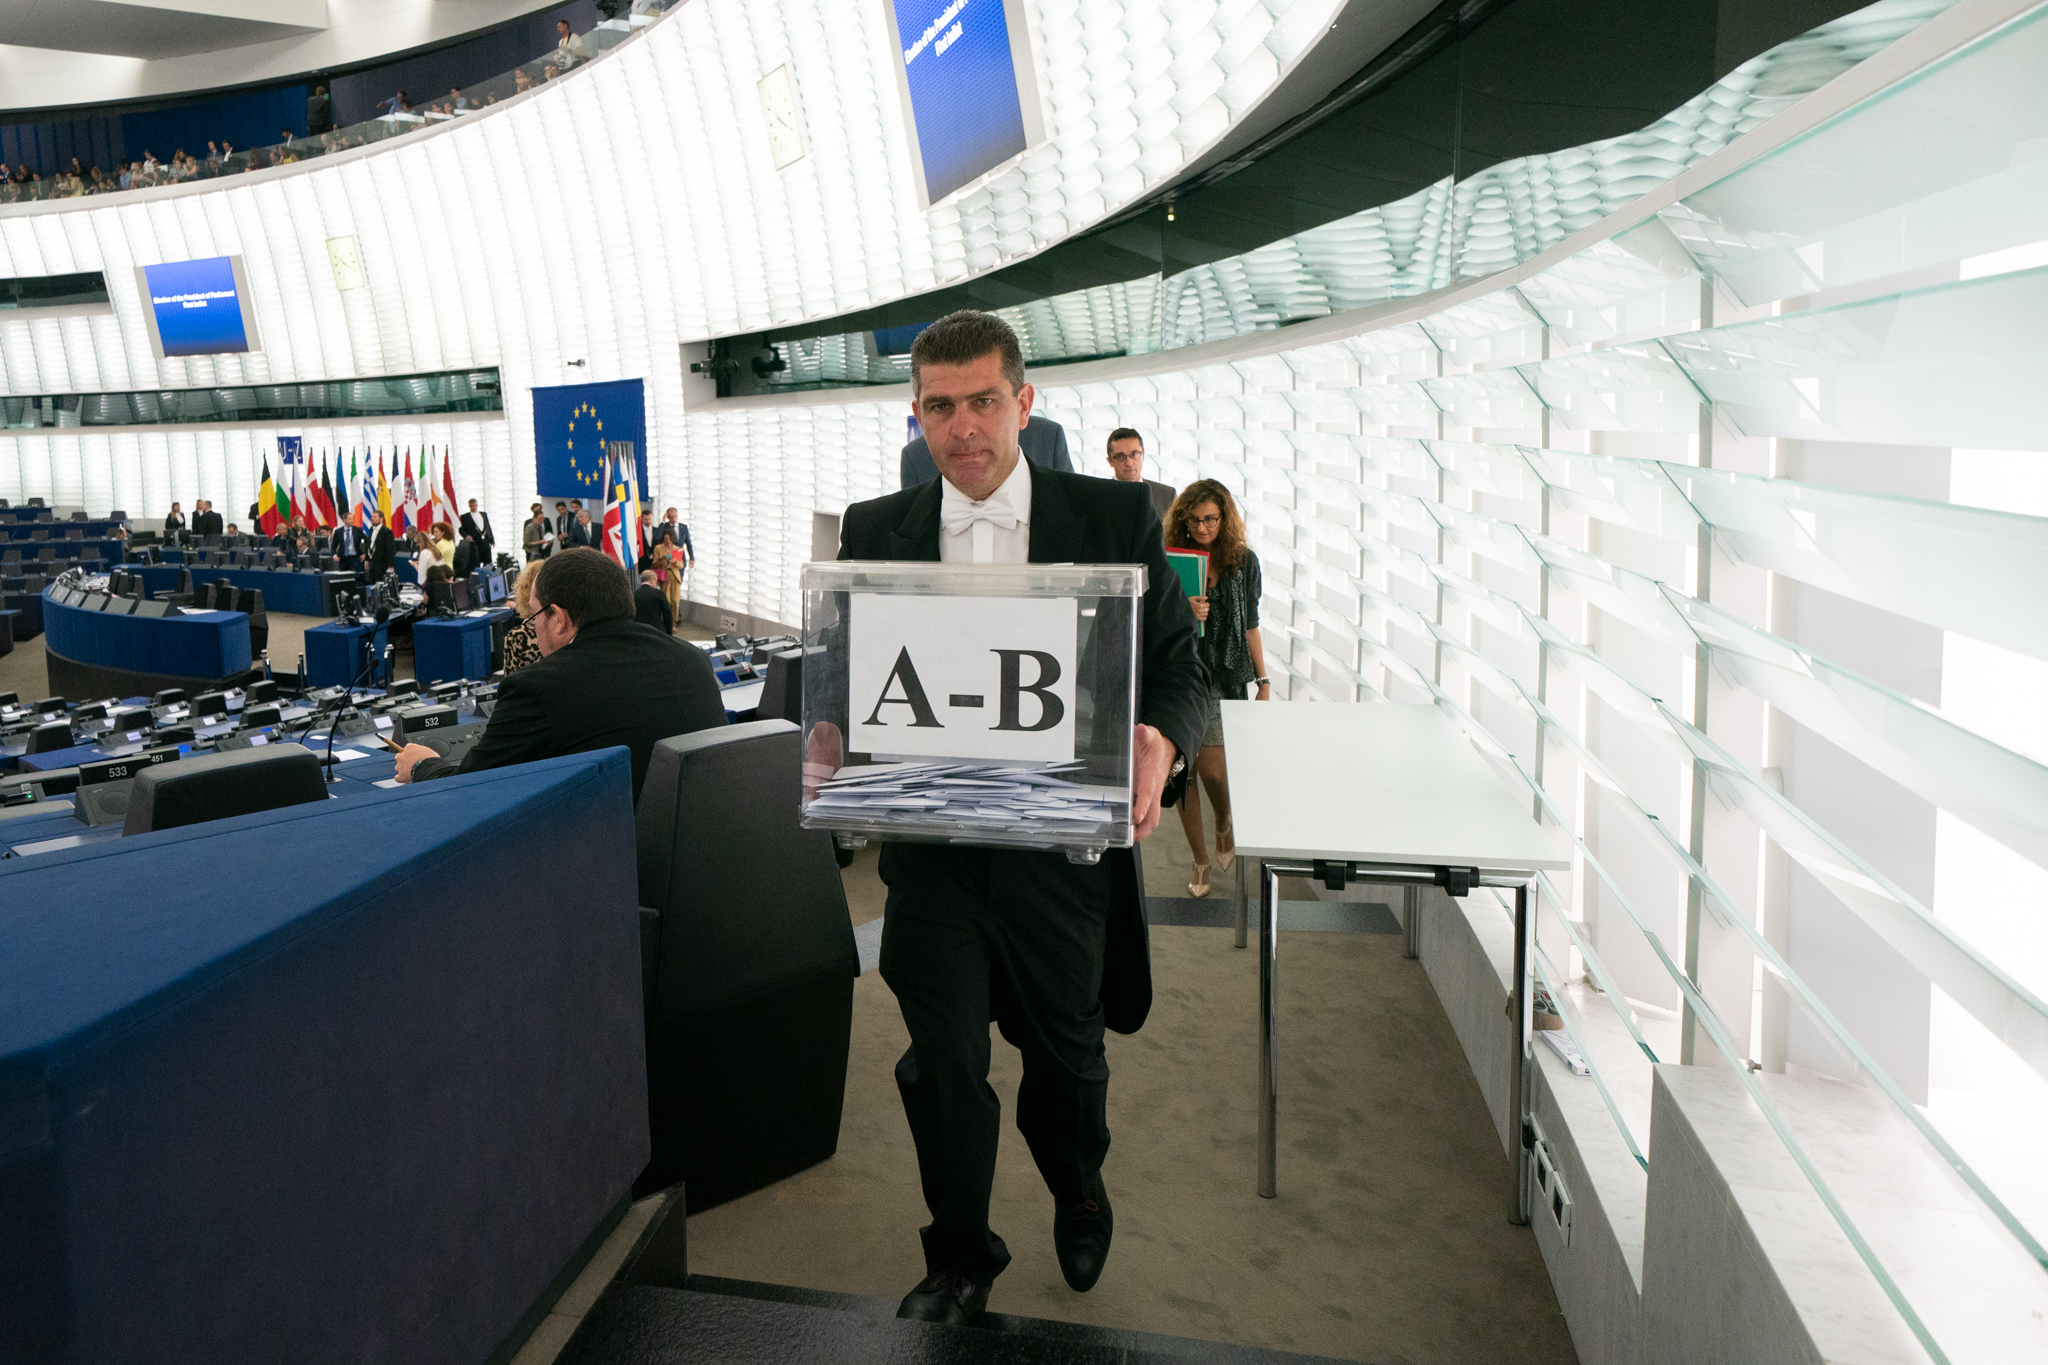 Members of the European Parliament entrusting the new European Commission President